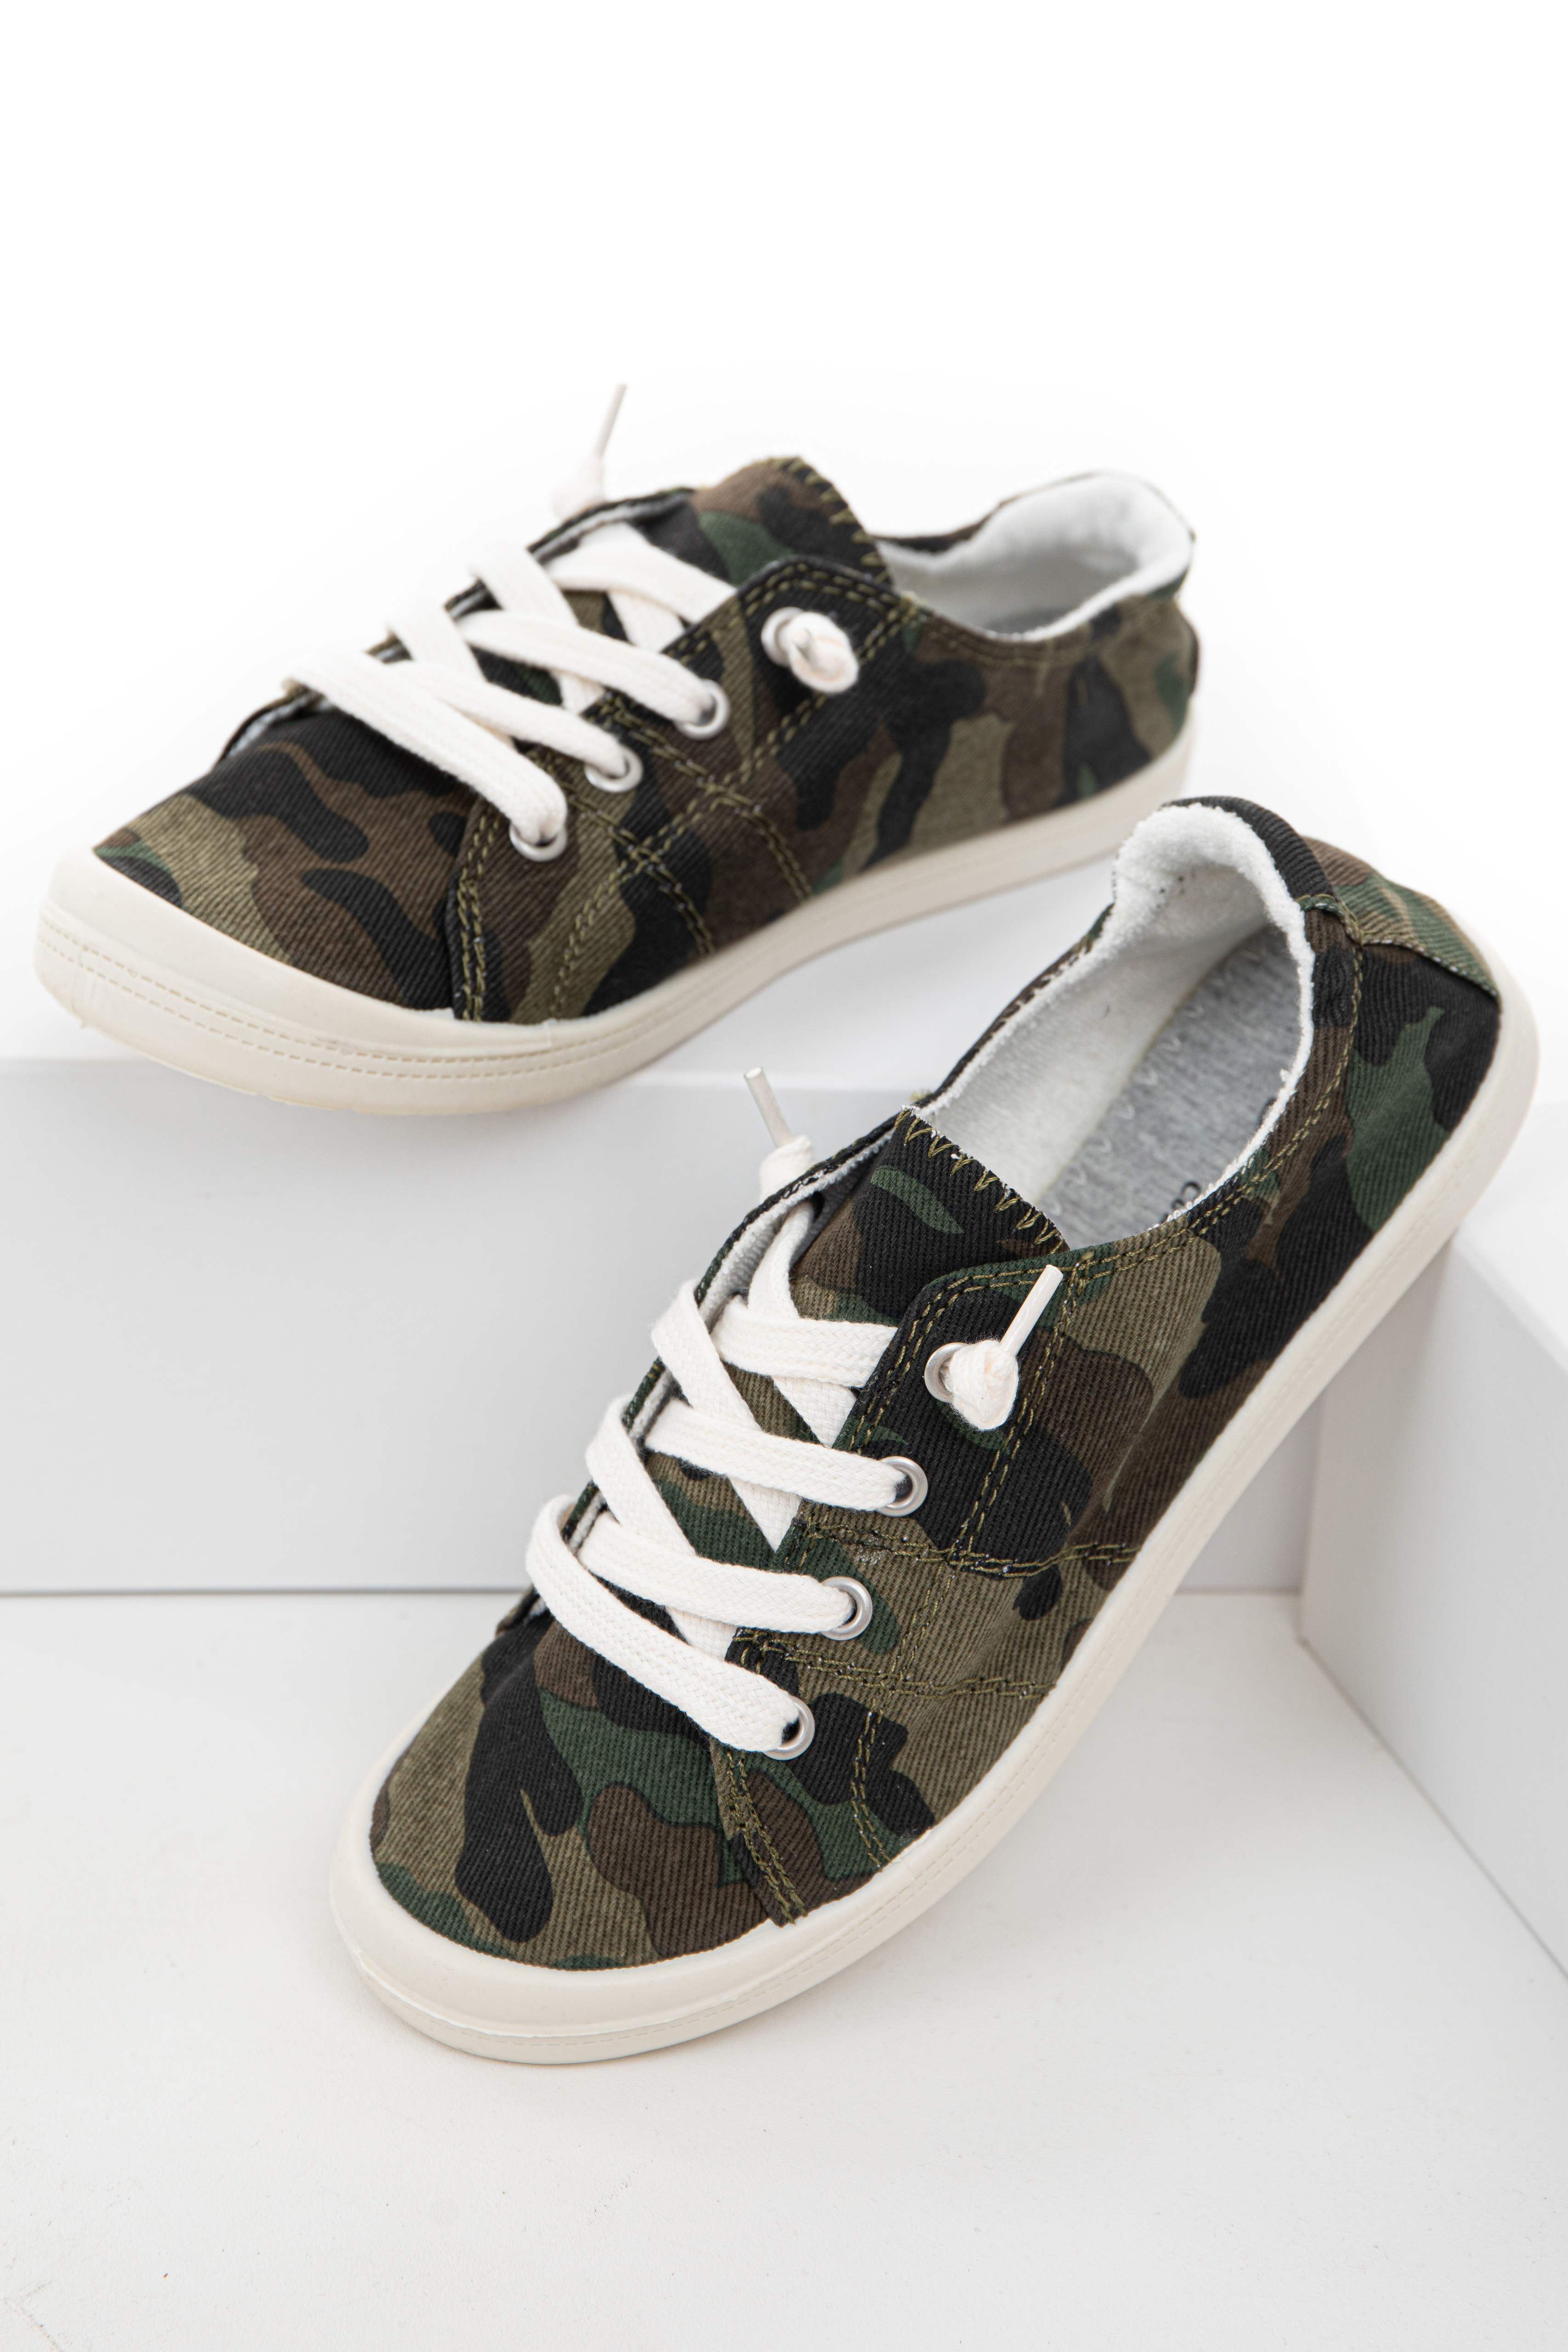 Forest Green Camo Slip On Sneakers with White Shoelaces